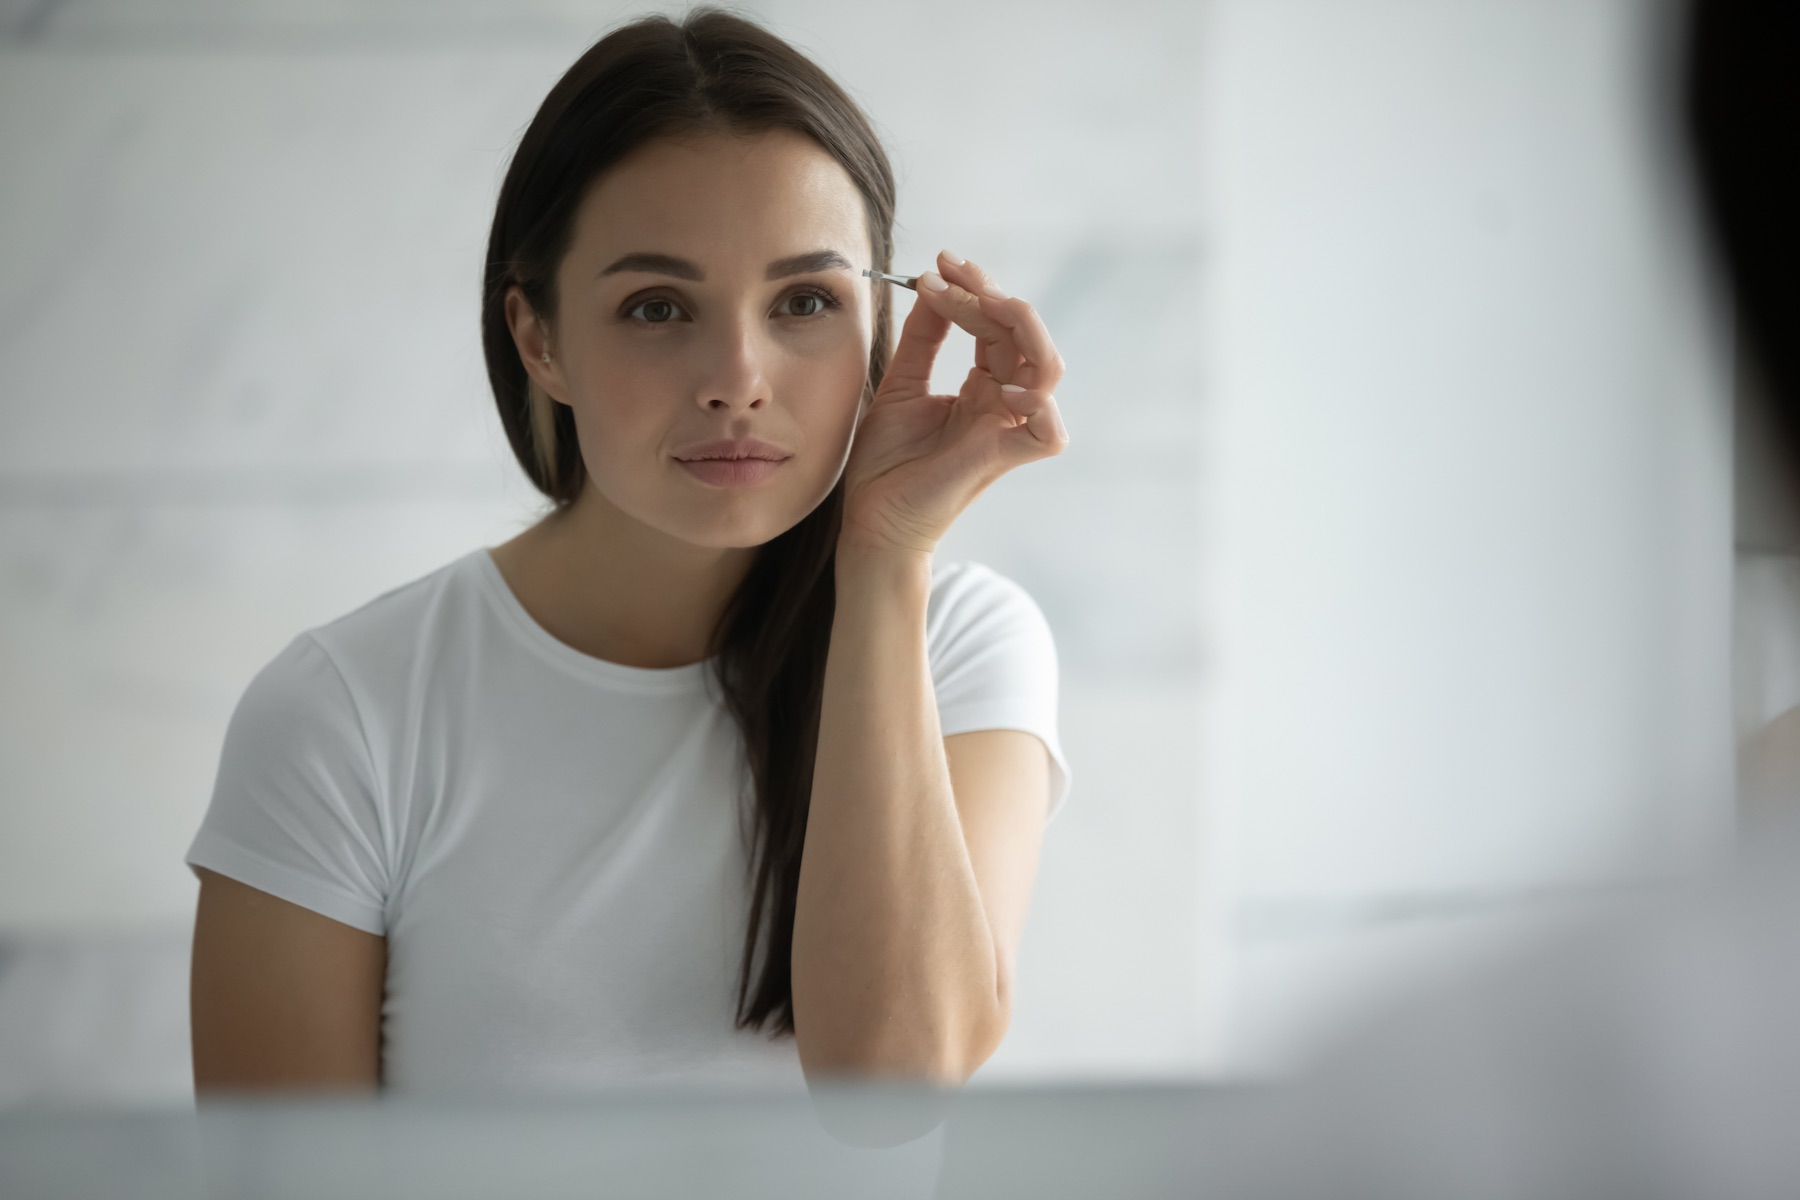 brunette white woman looking in a mirror while tweezing her eyebrows